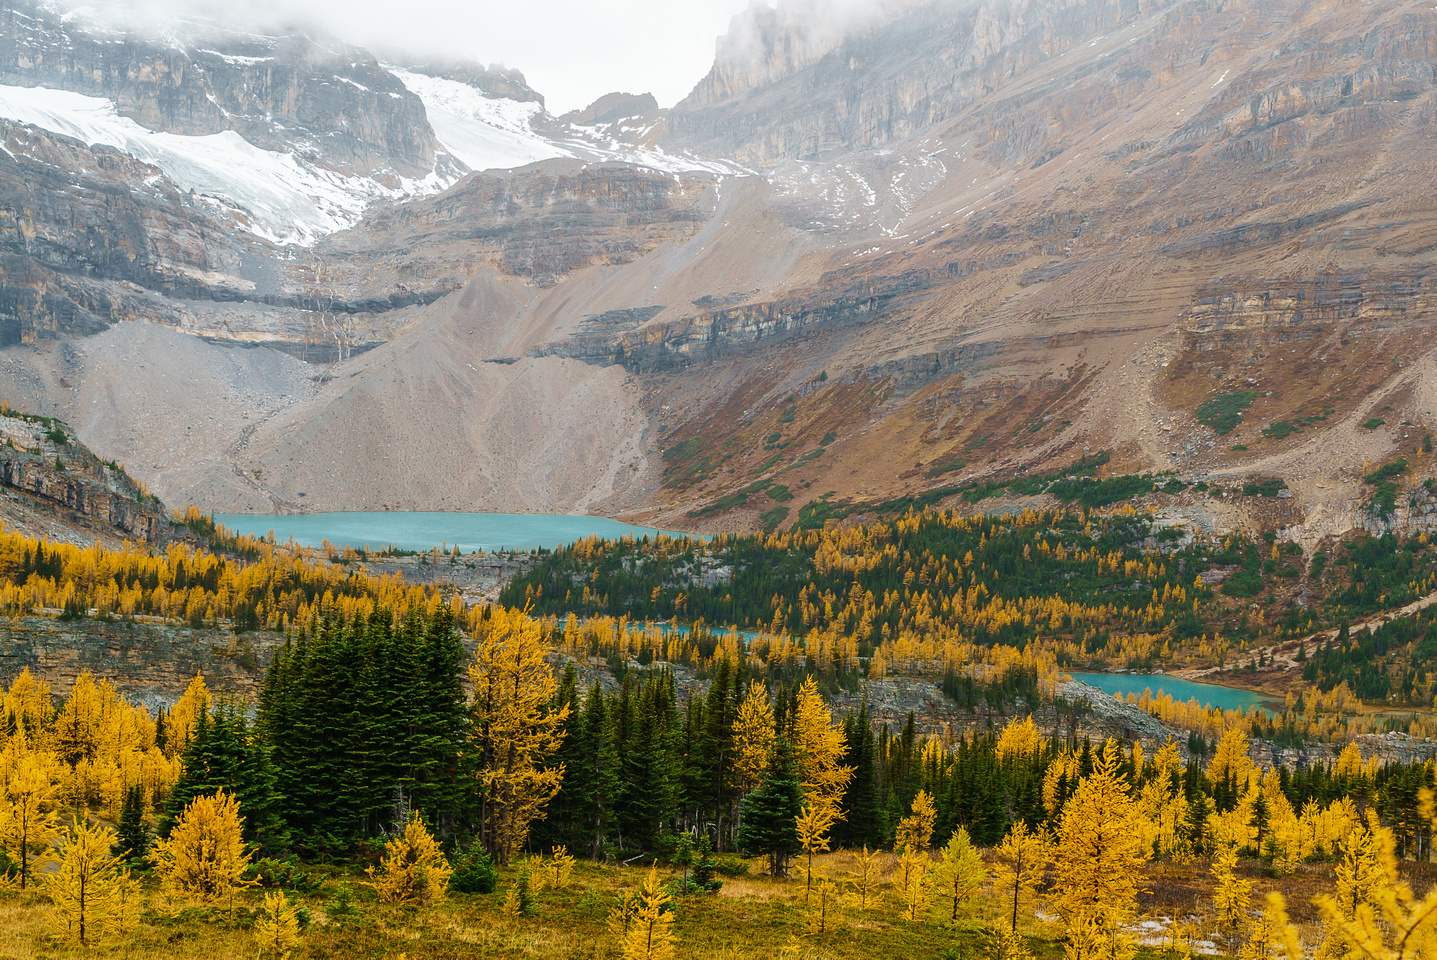 Brilliant fall color around Zigadenus and Myosotis Lakes - we returned via these lakes but the larches were already half done only 1.5 days later thanks to frost and wind!